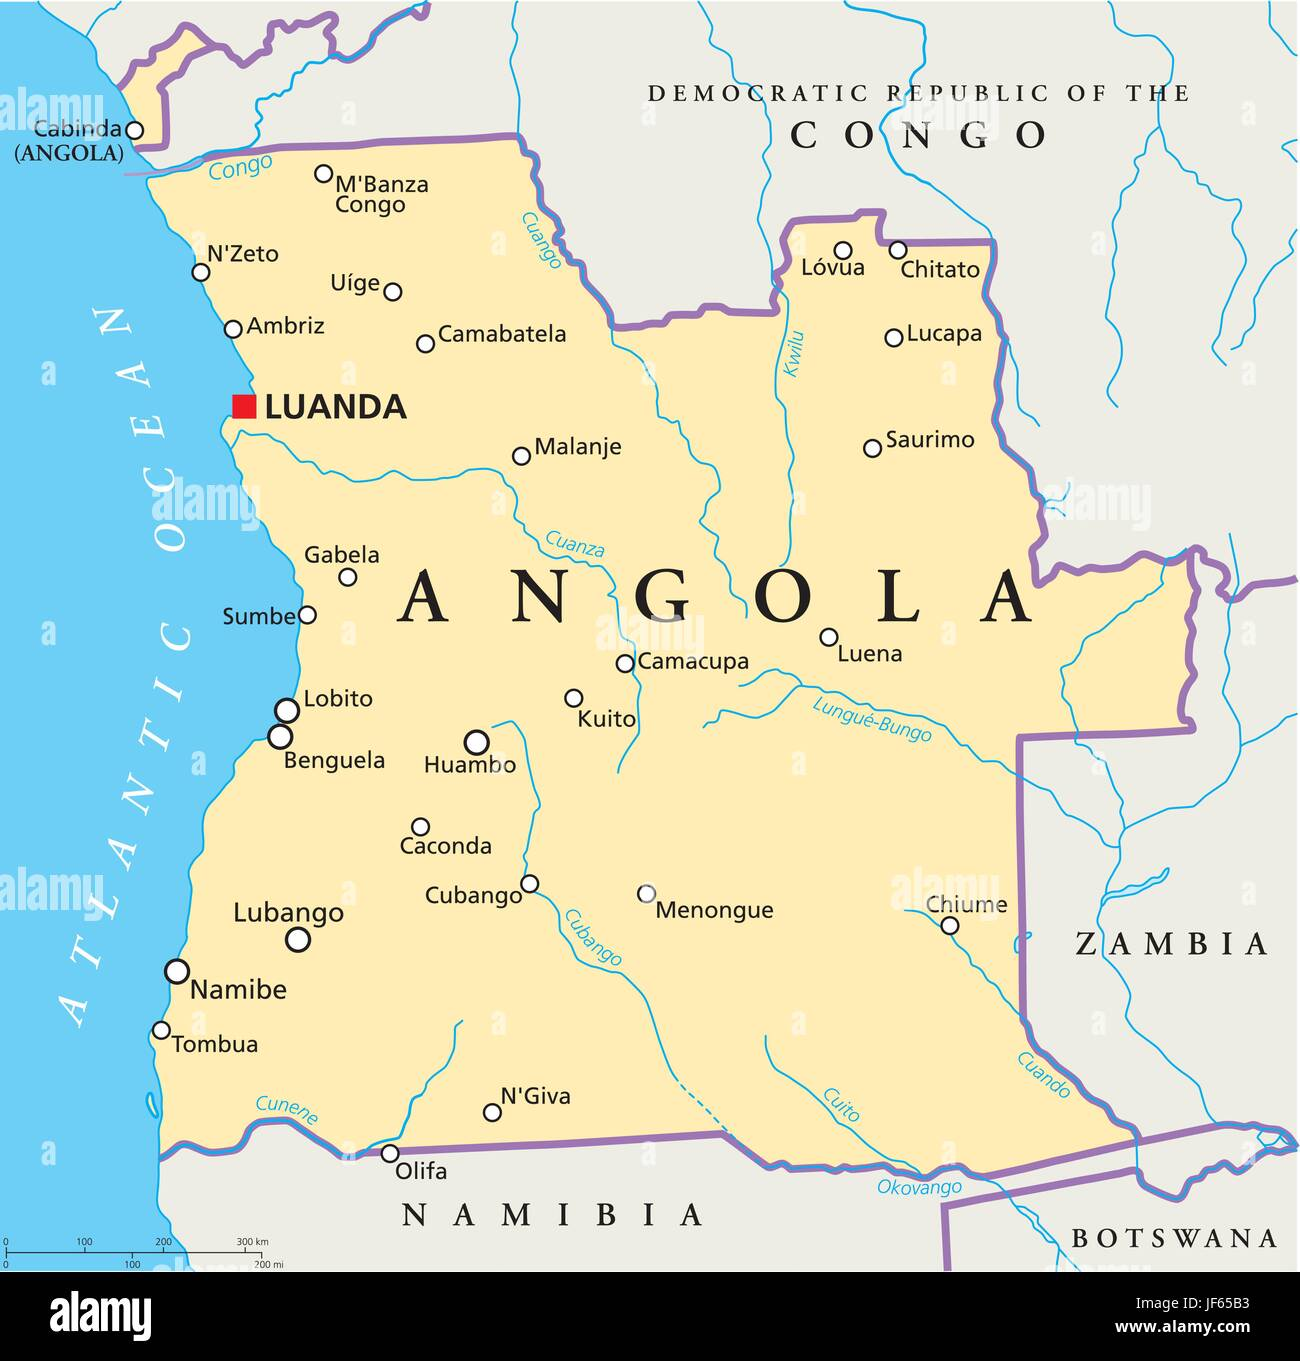 angola, map, atlas, map of the world, africa, namibia, atlantic